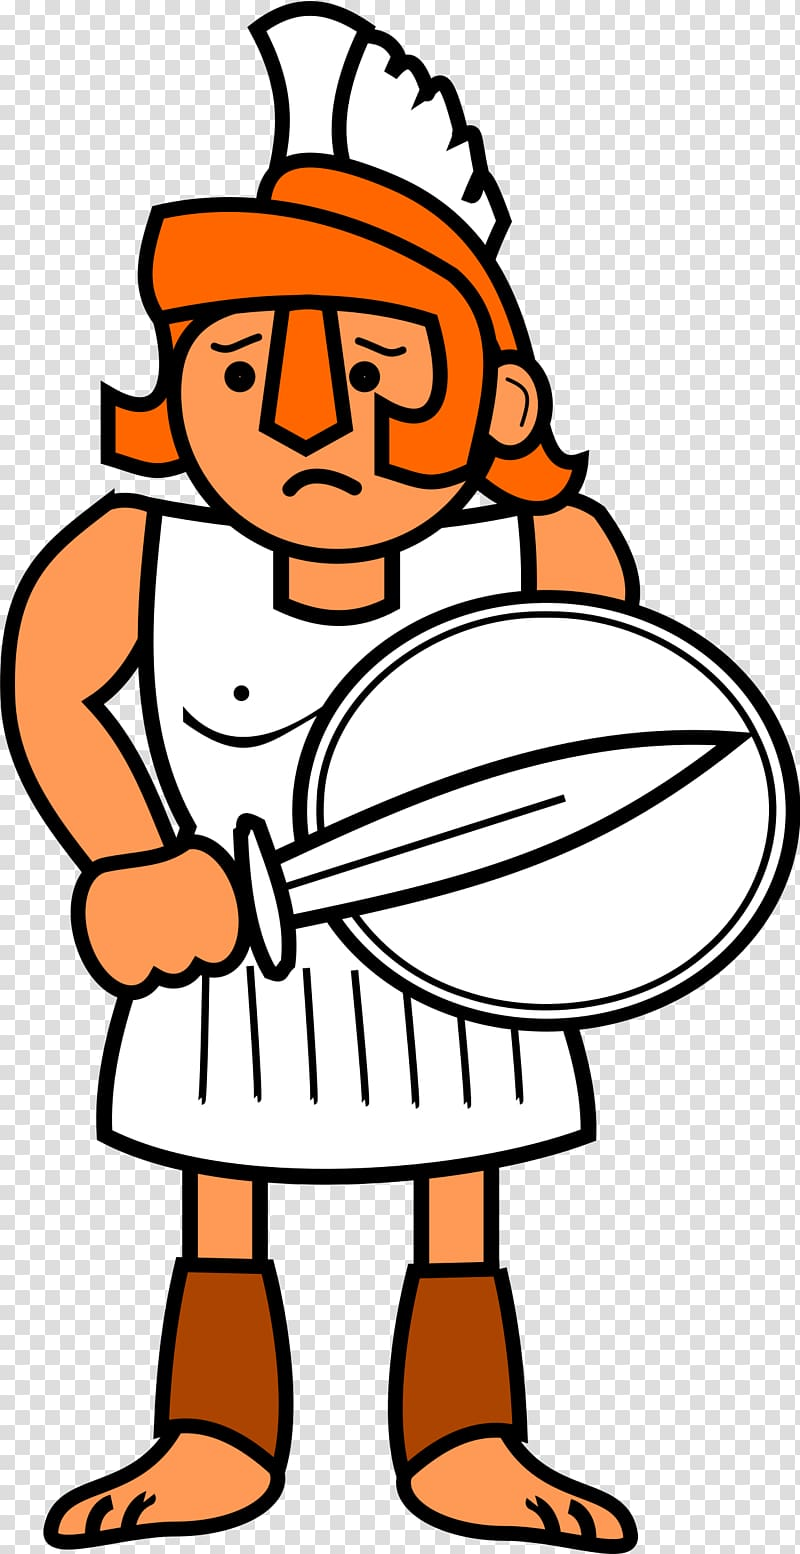 Greece clipart animated. Ancient rome soldier roman